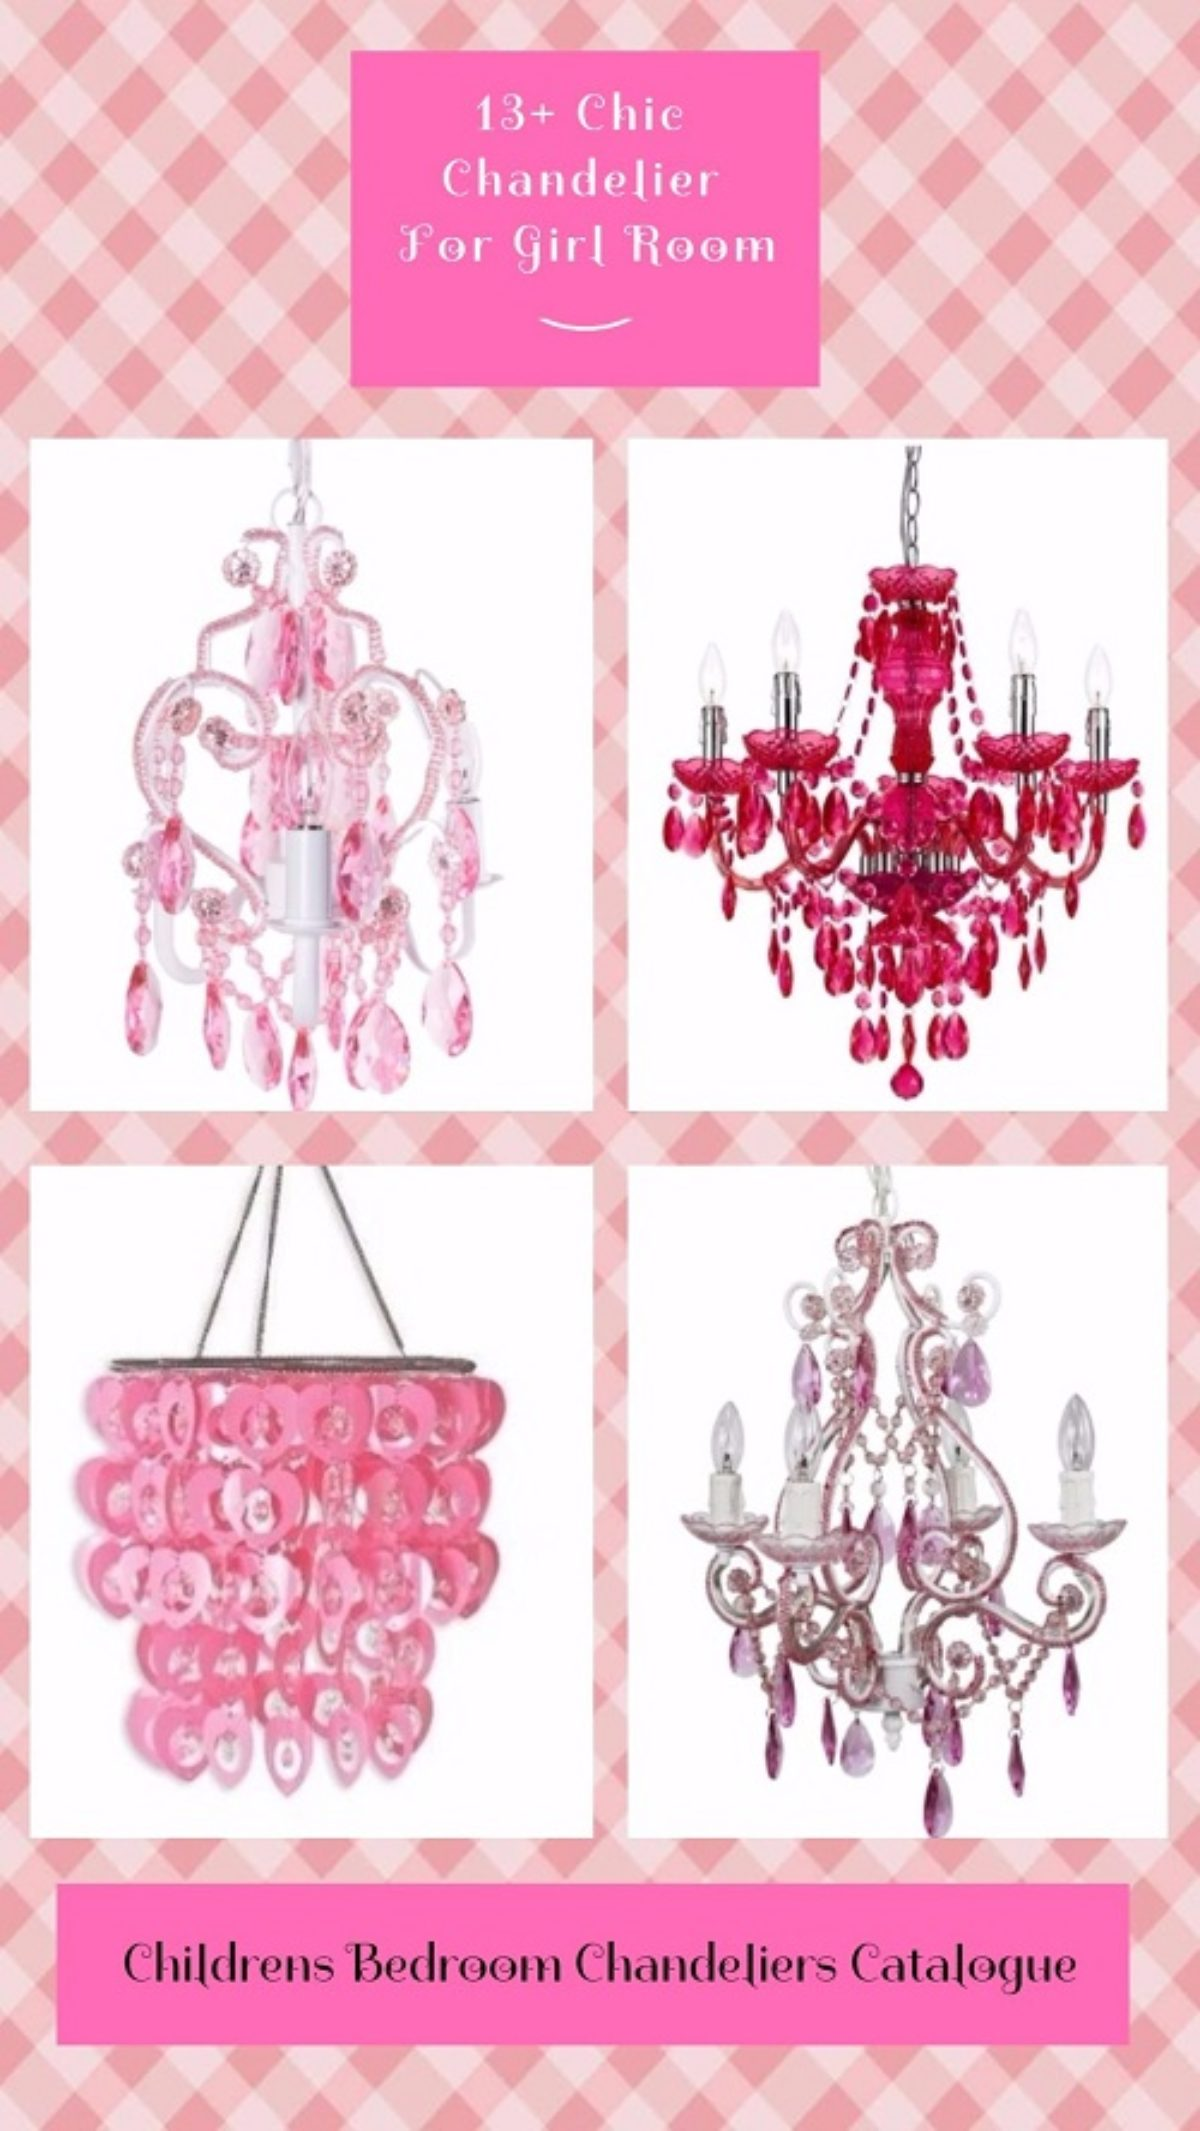 Childrens Bedroom Chandeliers Catalogue 13 Chic Chandelier For Girl Room